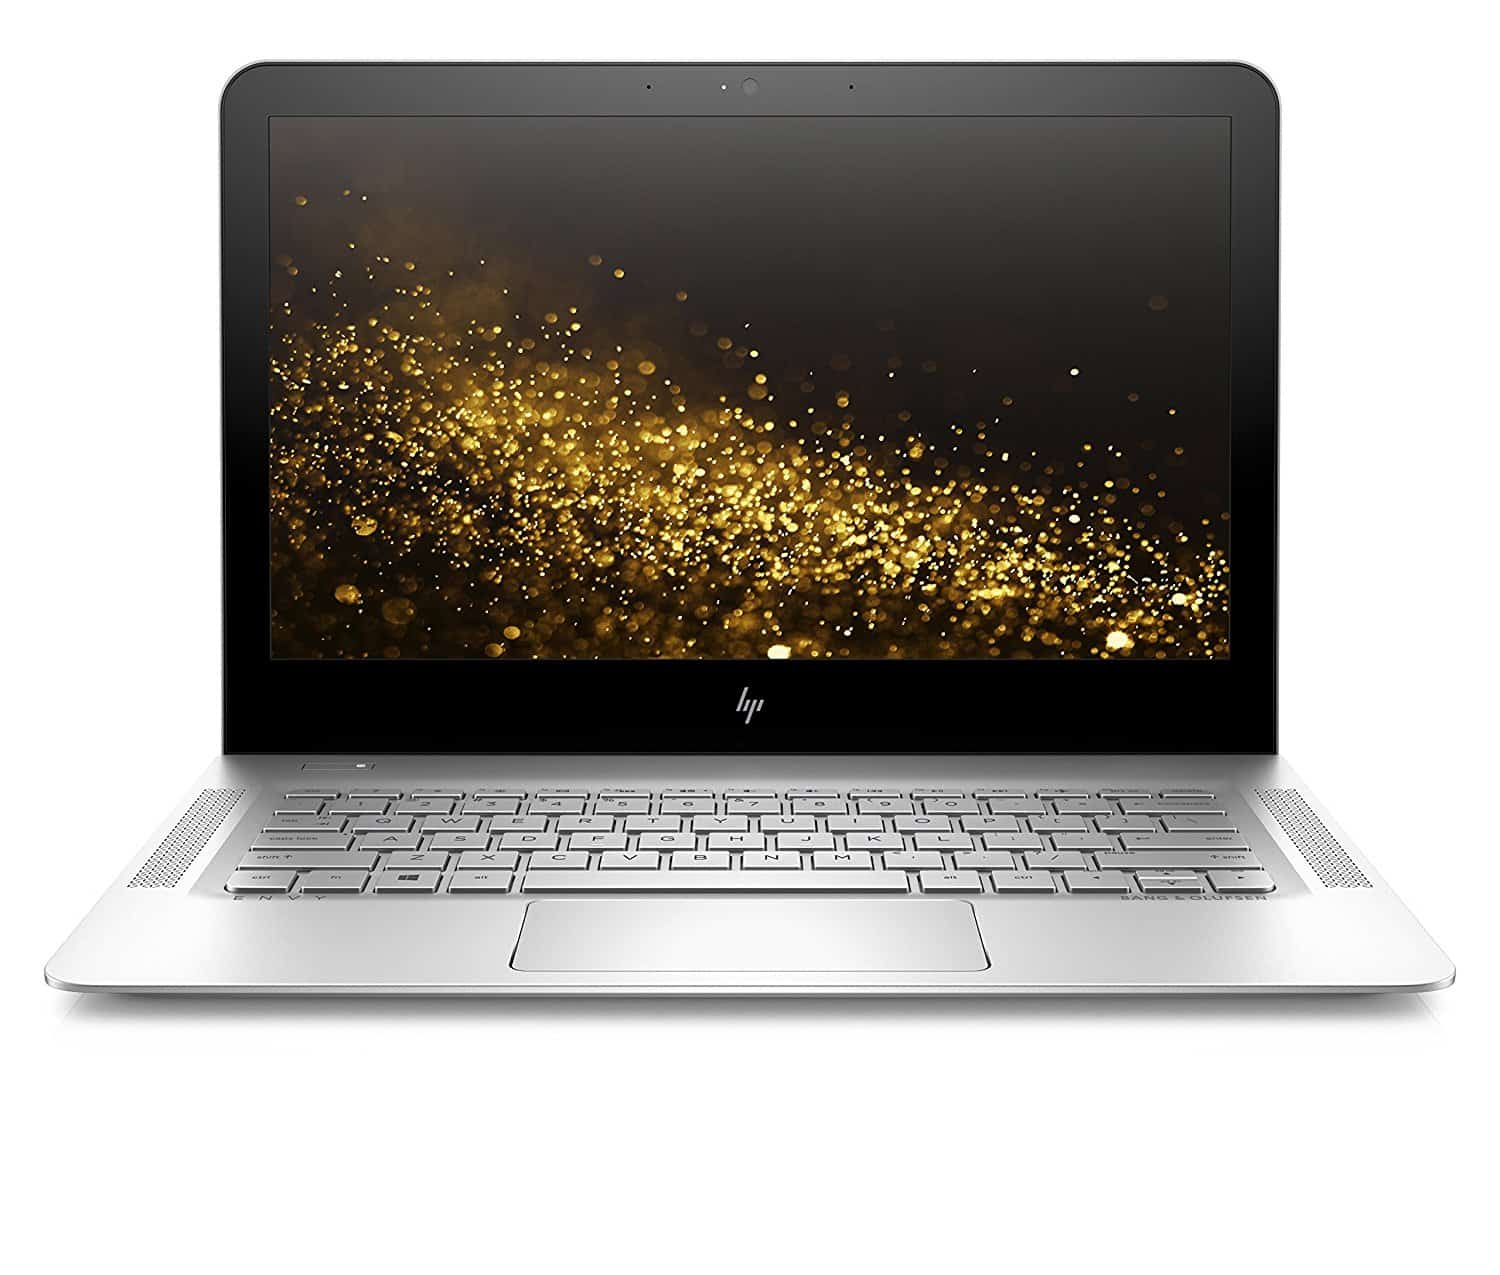 HP ENVY 13-inch Laptop